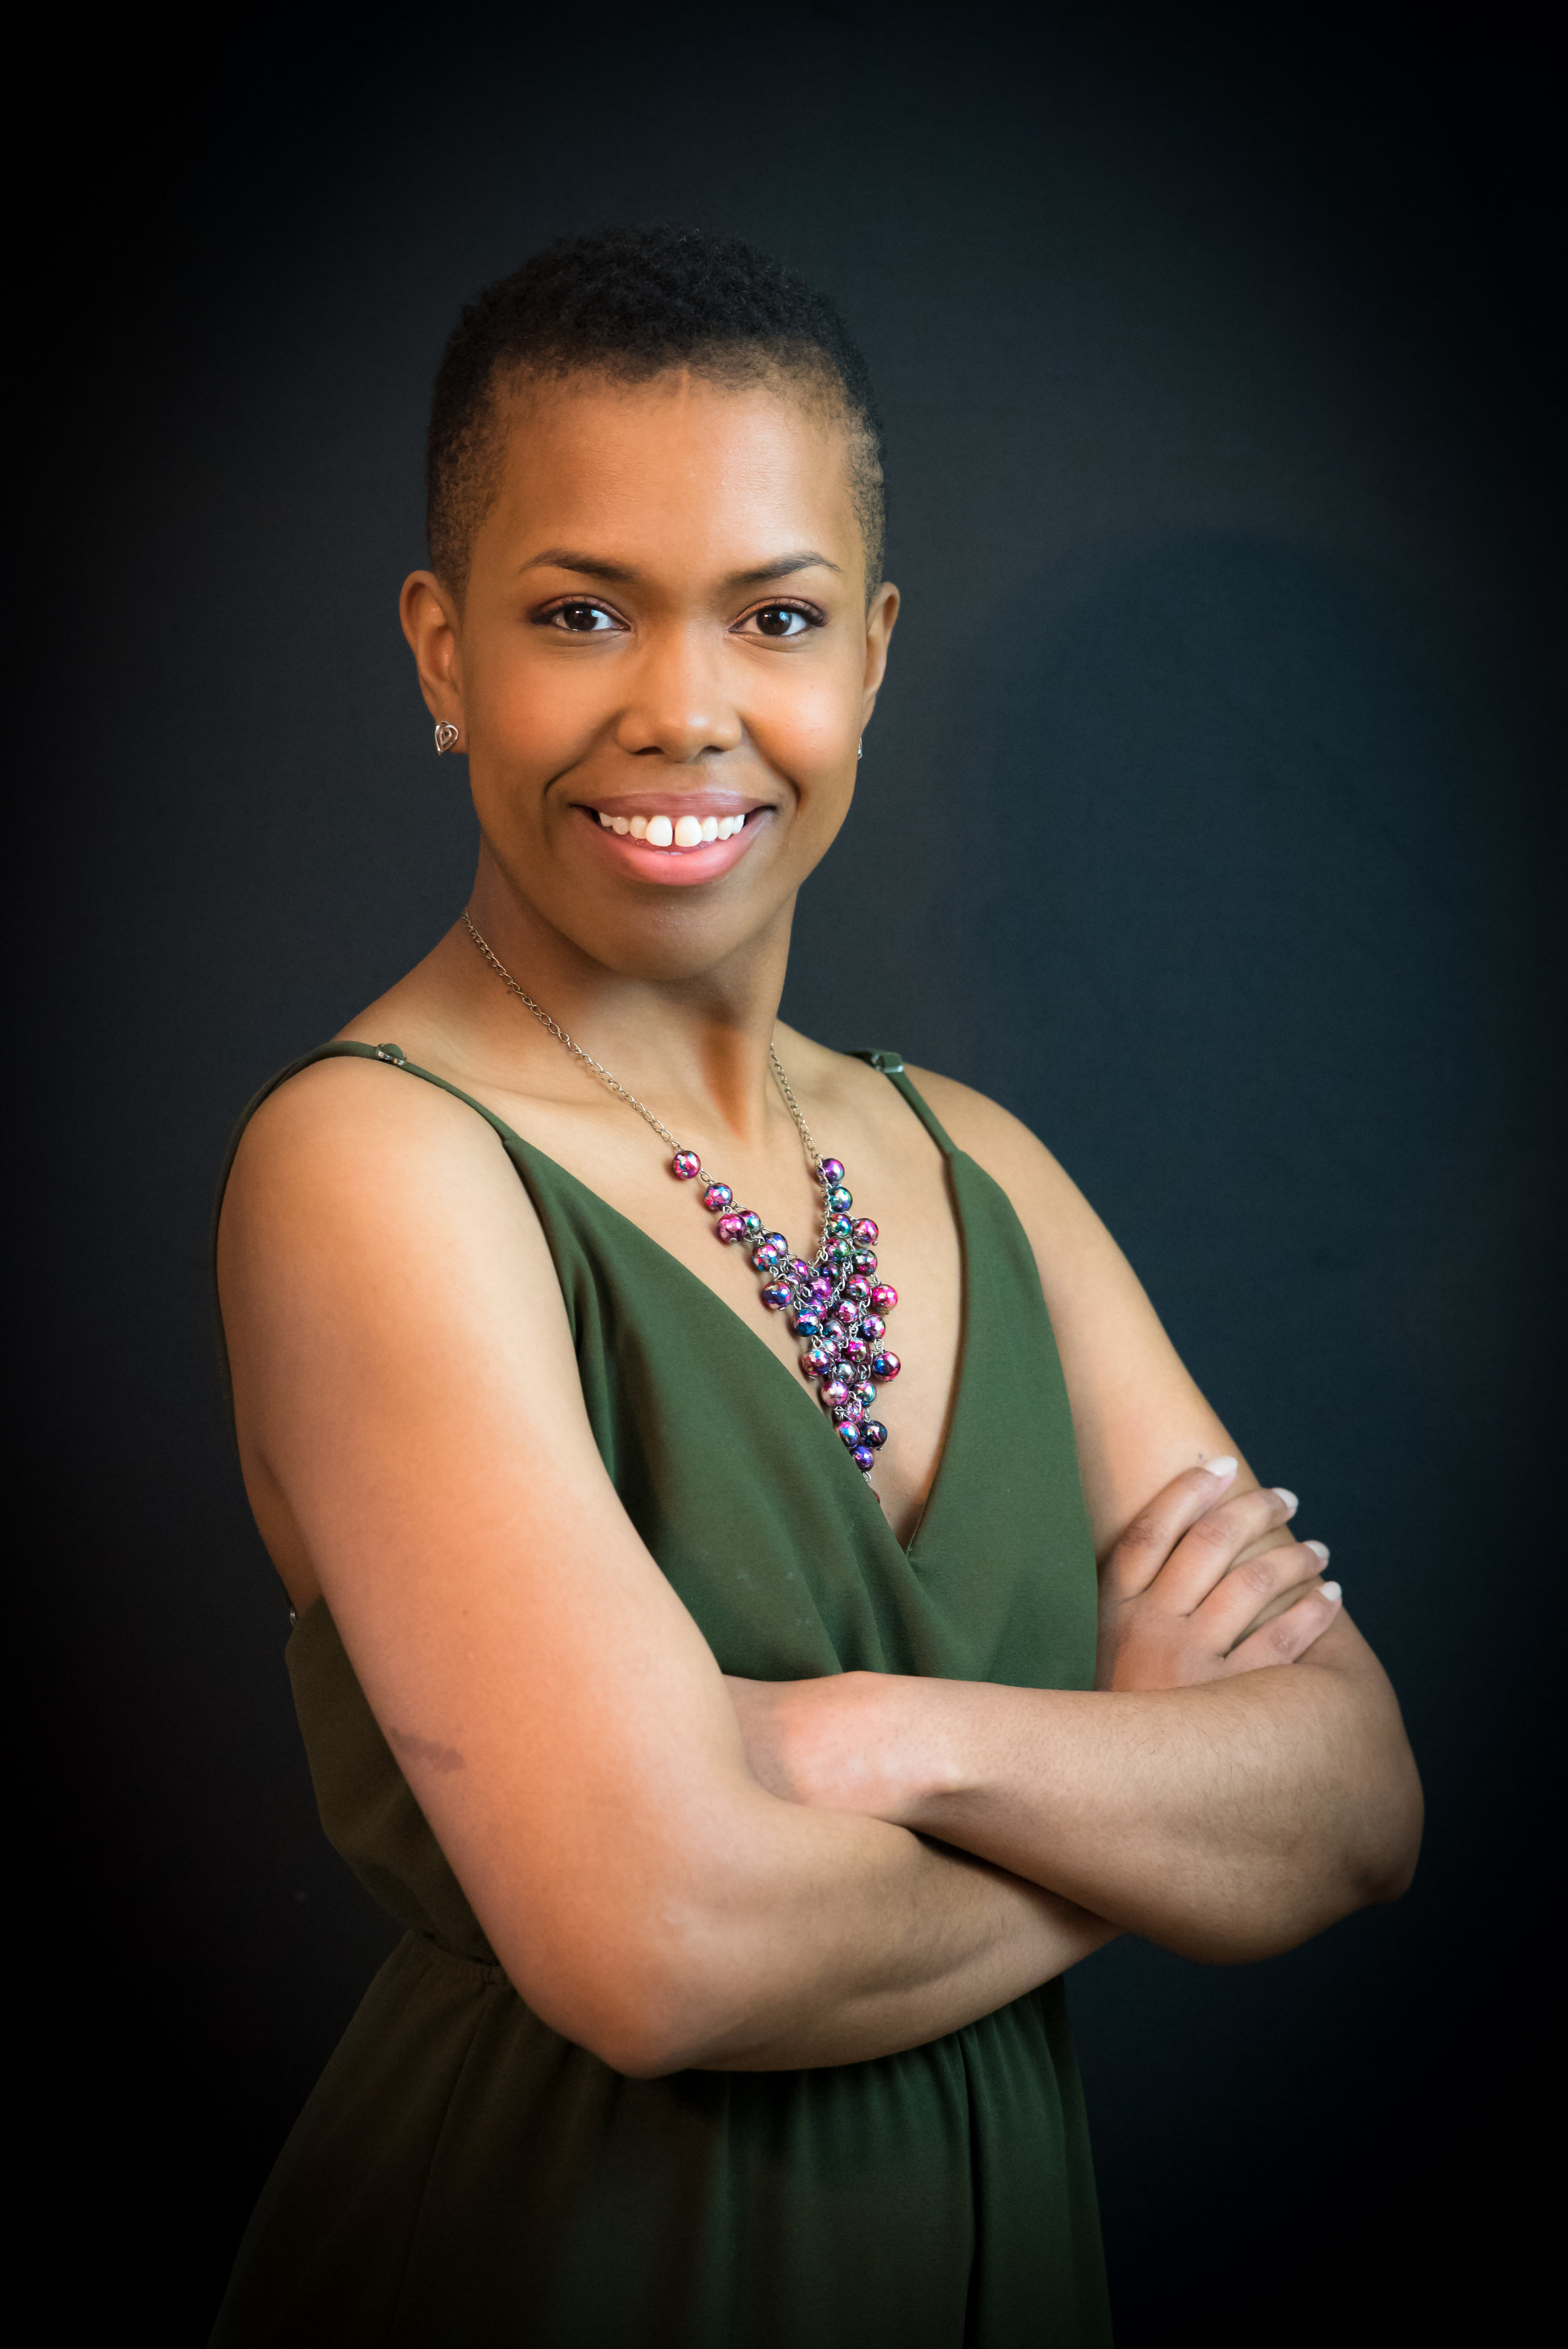 By day, Dr. Alicia Cheek is a biochemist and motivational speaker for youth and young adults. - By night, Alicia is a sought-after Career Consultant dedicated to helping professionals succeed in their dream careers by teaching essential application and interview skills. Her effective keyword optimization strategies are proven to get her clients' applications noticed.In late 2017, having been fired from her job after 5 months, Dr. Cheek had to think fast before her family blew through their emergency savings. After doing extensive research, she cracked the code on online applications and resume writing. A month and a half into her job search with no interviews, her phone suddenly didn't stop ringing! After receiving a job offer, Dr. Cheek was also able to successfully negotiate the highest salary possible for her job grade. In May 2018, she started career consulting and resume writing. She is thrilled to provide tangible resources to career-minded individuals for career advancement and success.